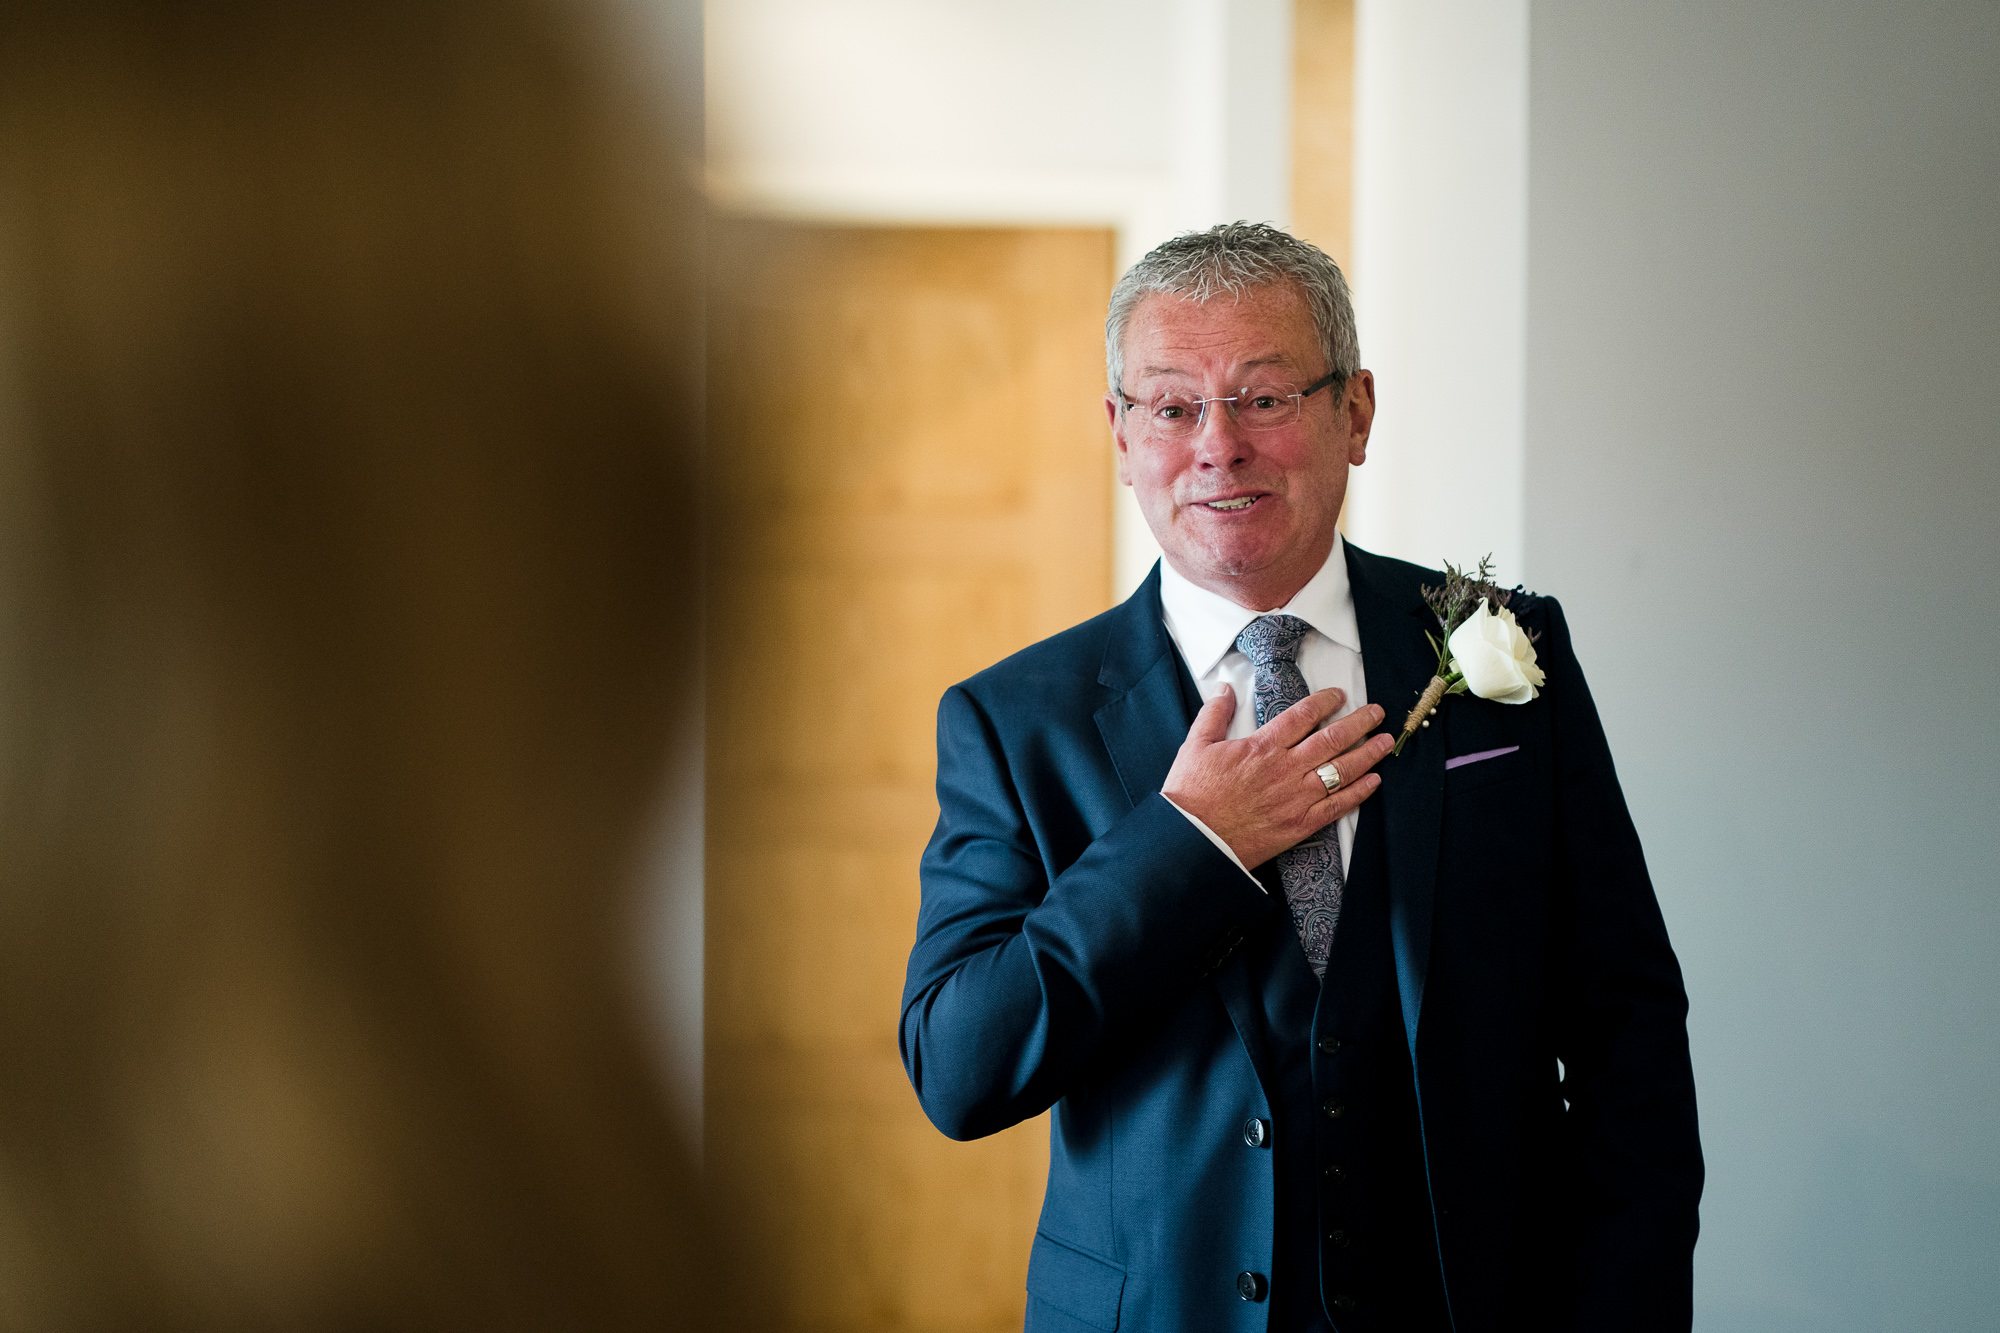 Tower Hill BArn Wedding Photographer based in north west england (18 of 35).jpg